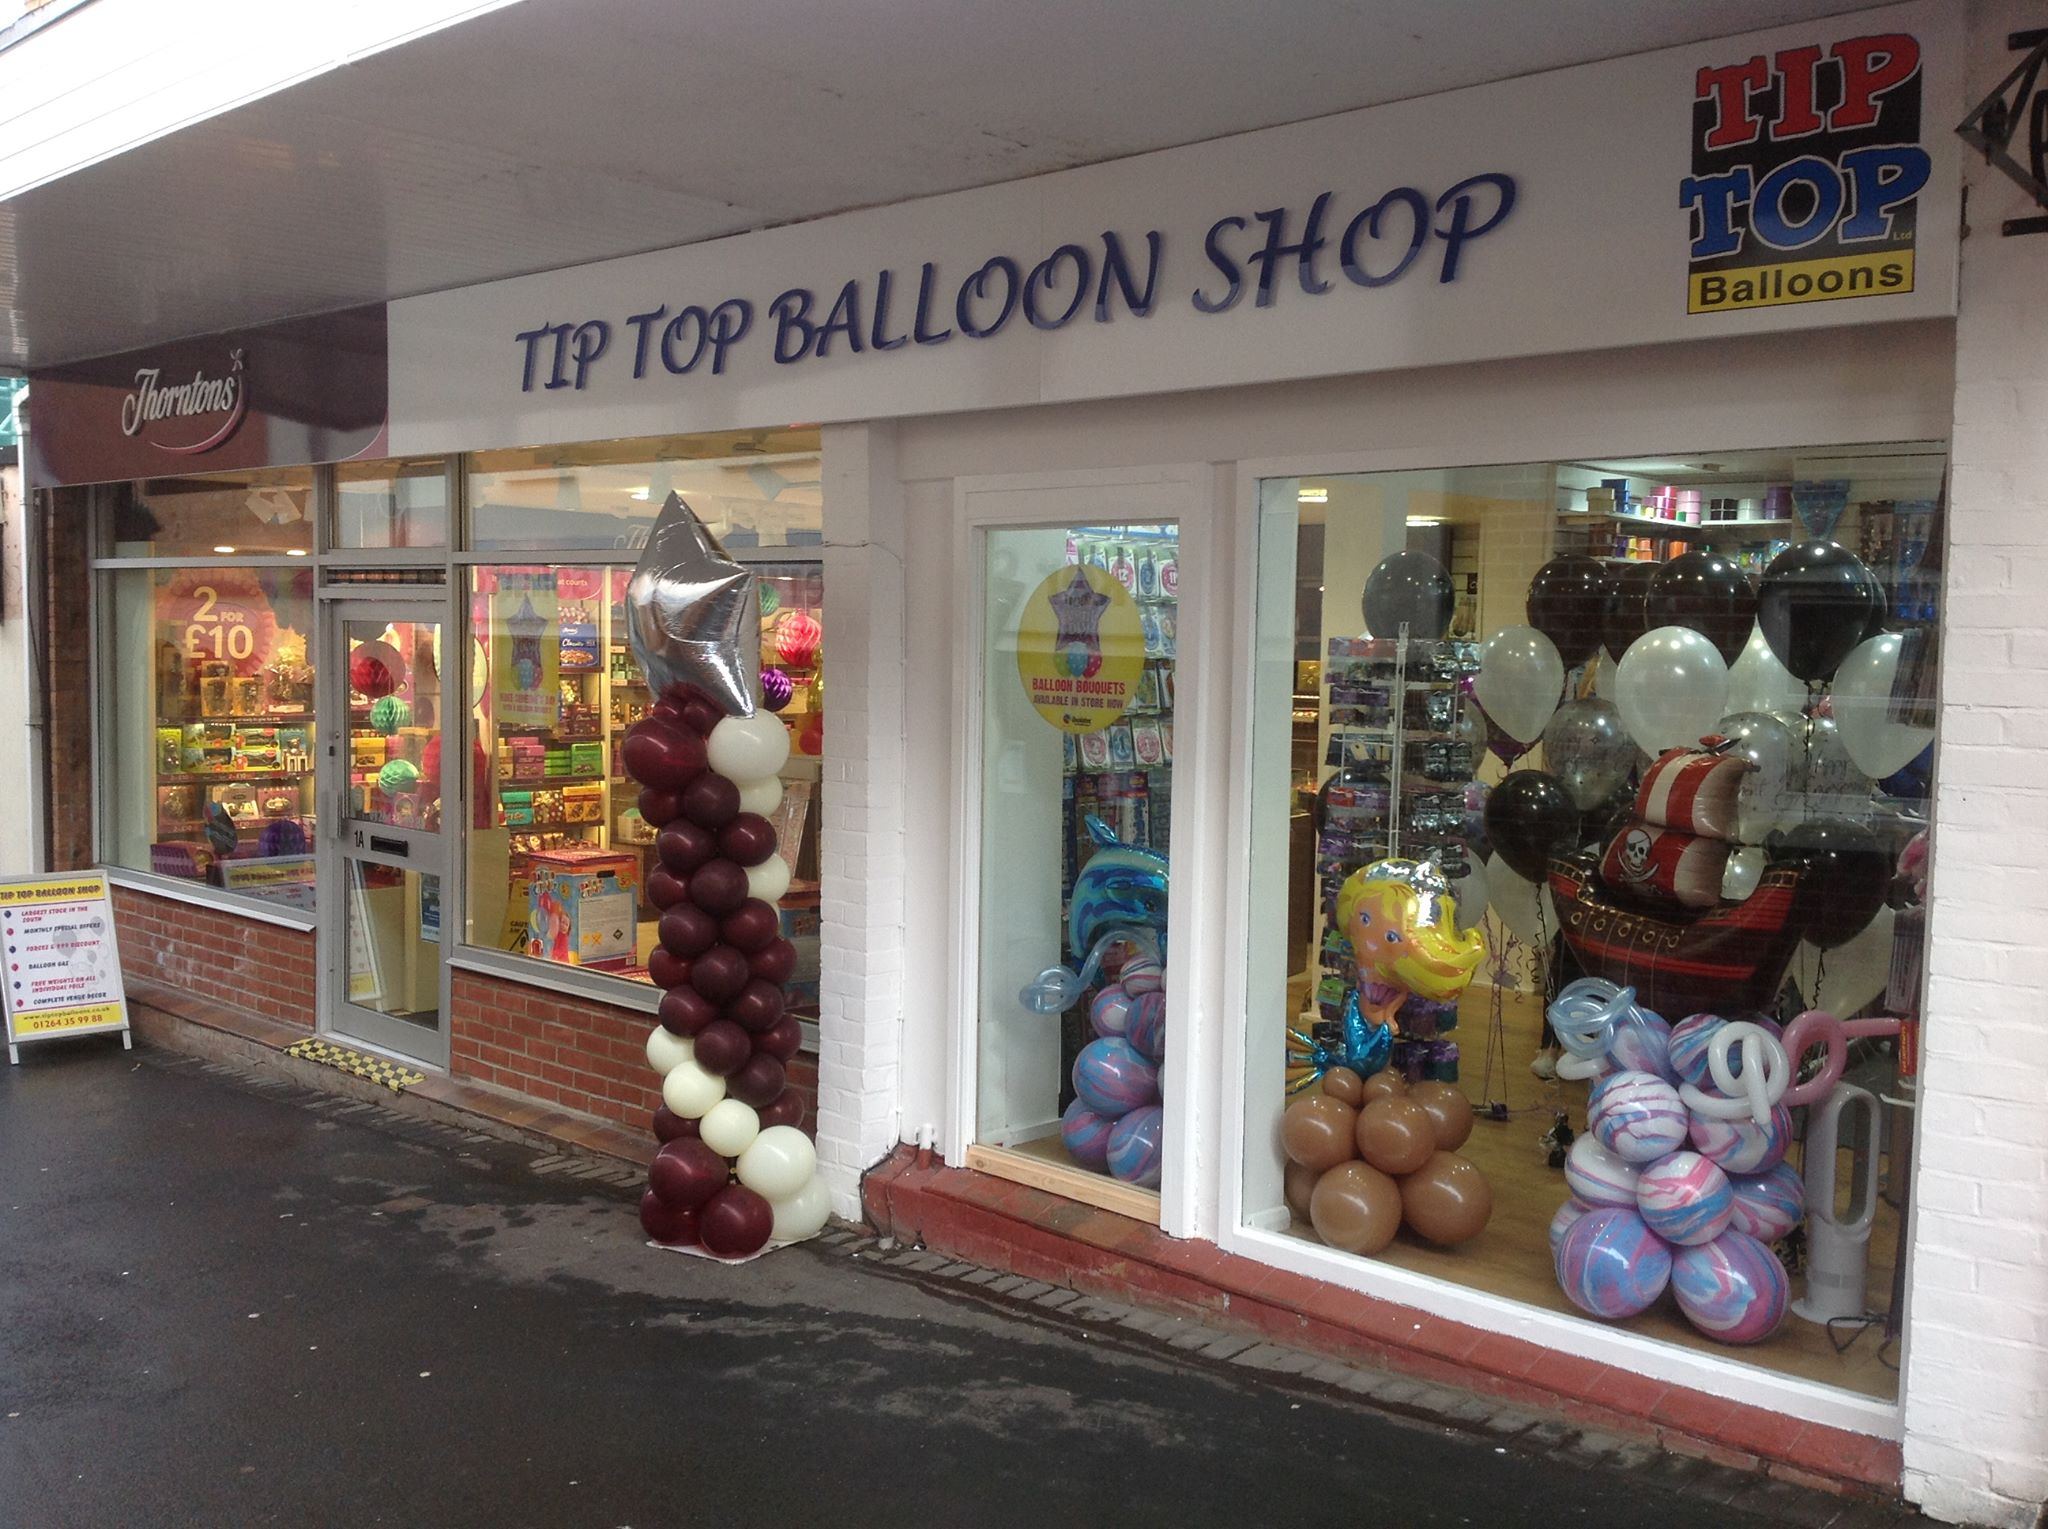 TipTop Balloons, 1A and 1B Union Street, Andover, Hampshire, SP10 1PA, United Kingdom